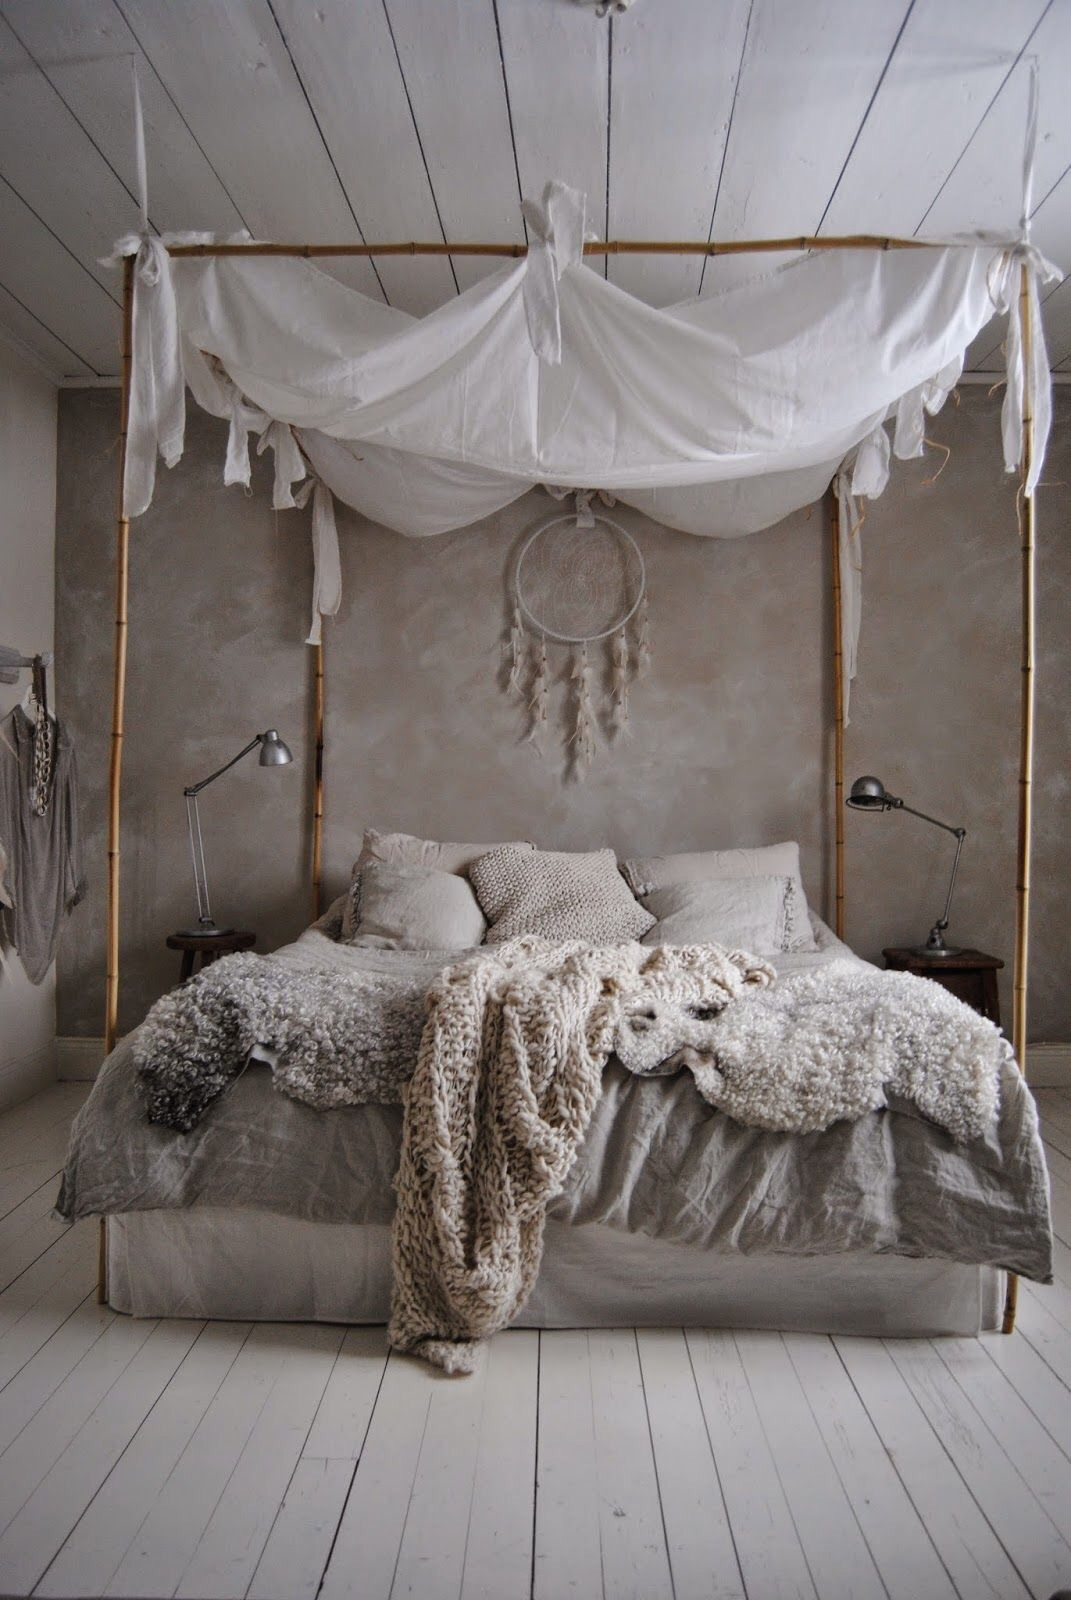 The Canopy Type Bed Is Also Another Typical Kind Of Item Seen Within Boho Style I Do Love These Beds As They Really Bring A Dreamy Beauty Feel